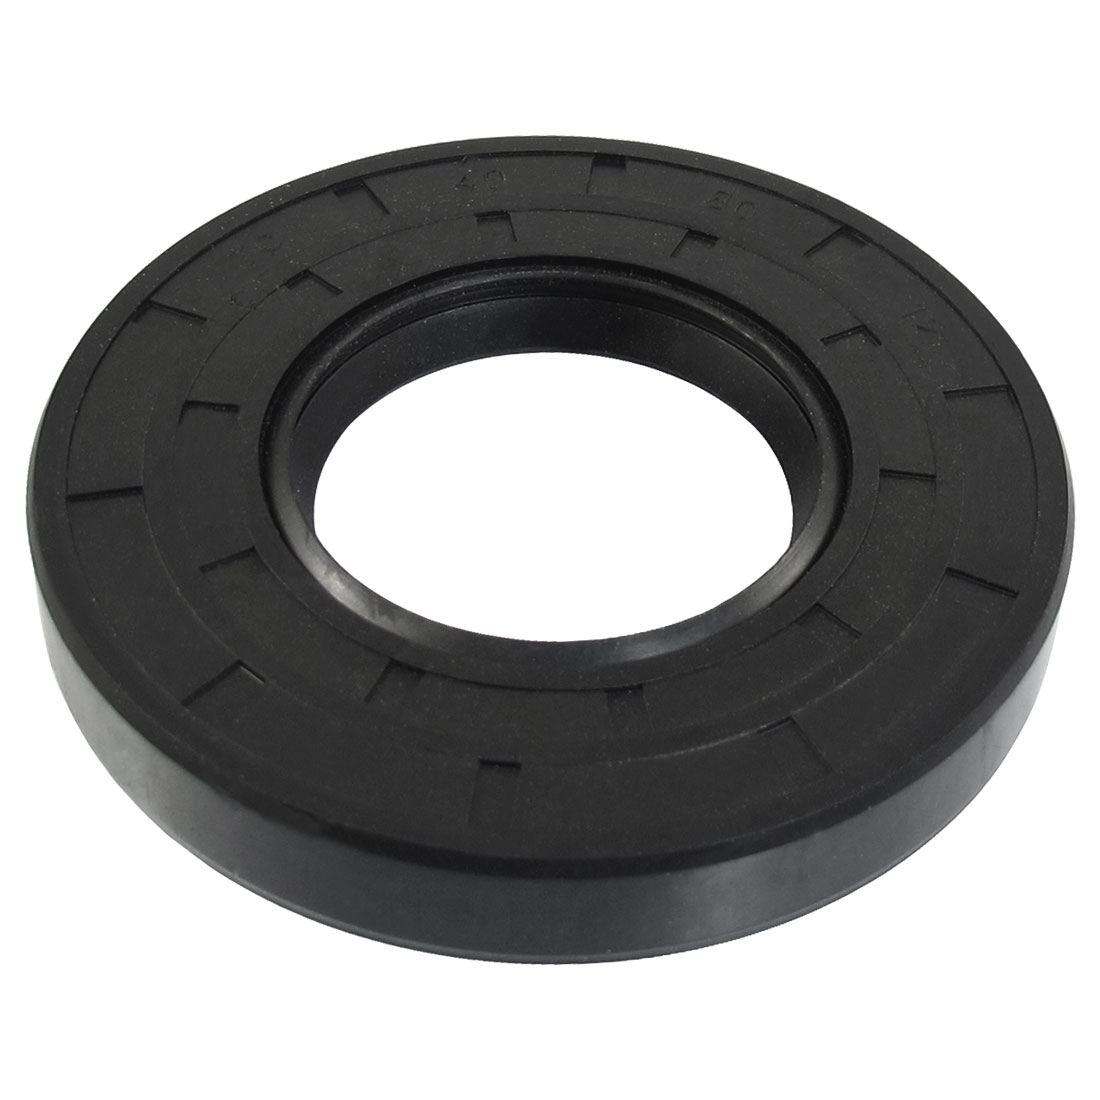 40mm x 80mm x 12mm Metric Double Lipped Rotary Shaft Oil Seal TC